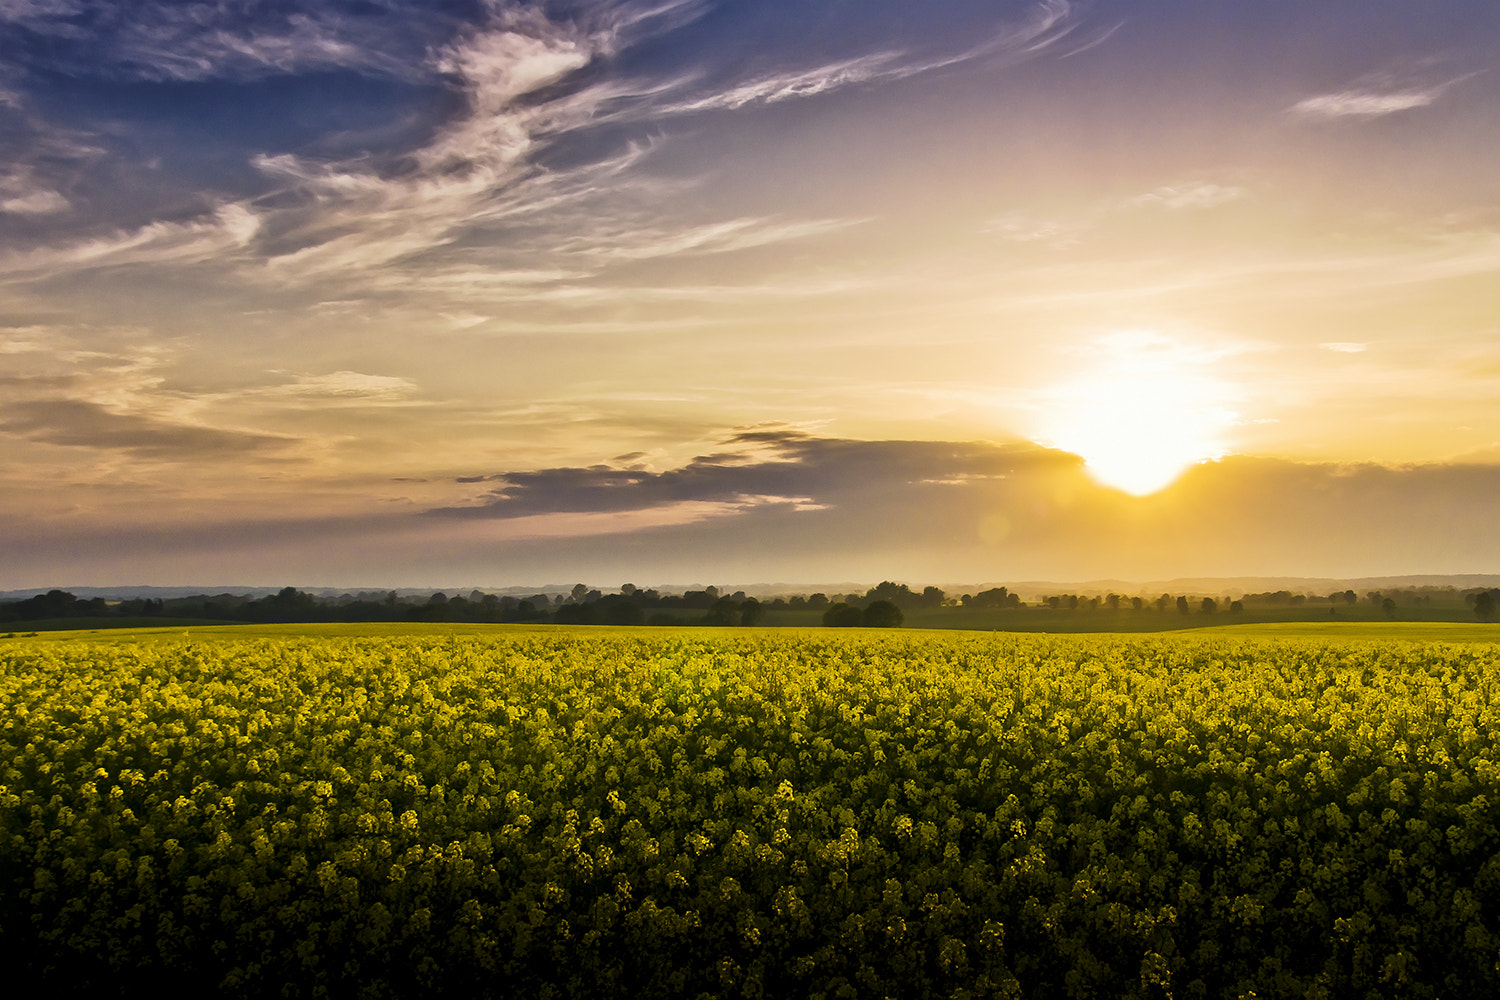 Photograph Stockelsdorf (Schleswig-Holstein), Germany - Sunset over Field of Rapeseed by Lars C. on 500px